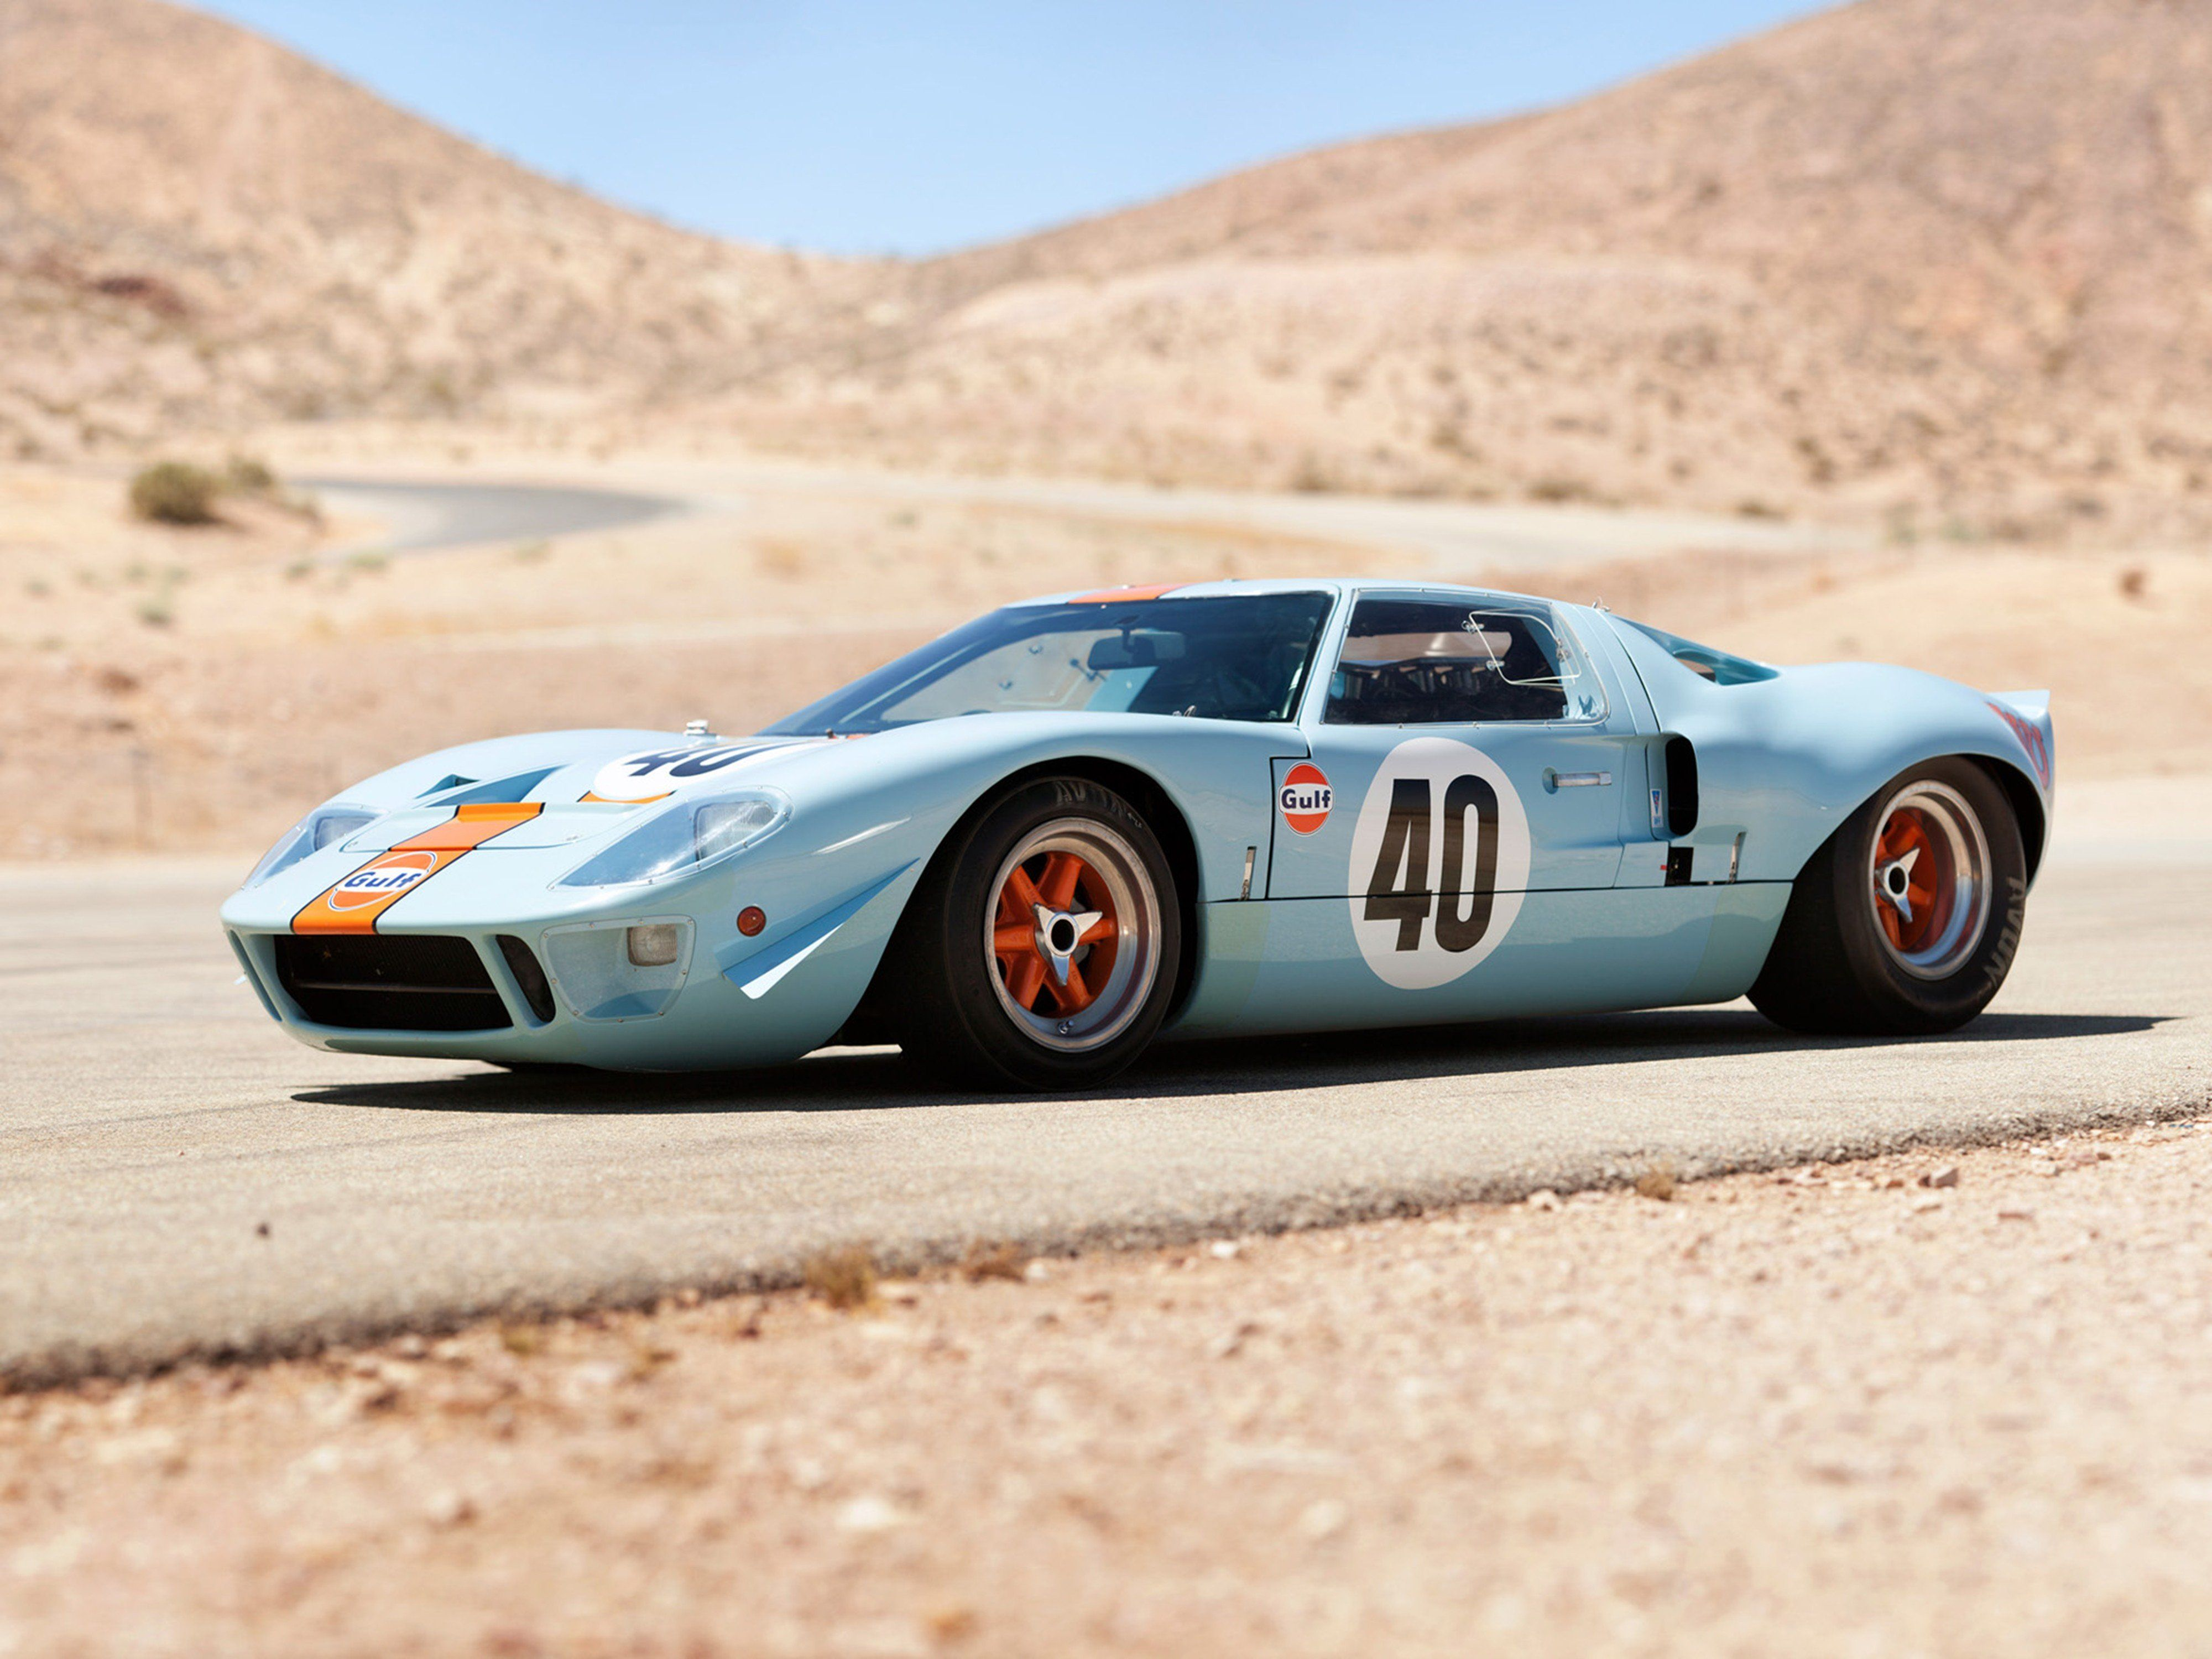 Photos of ford gt40 race cars 1968 gulf ford gt40 le mans racing car